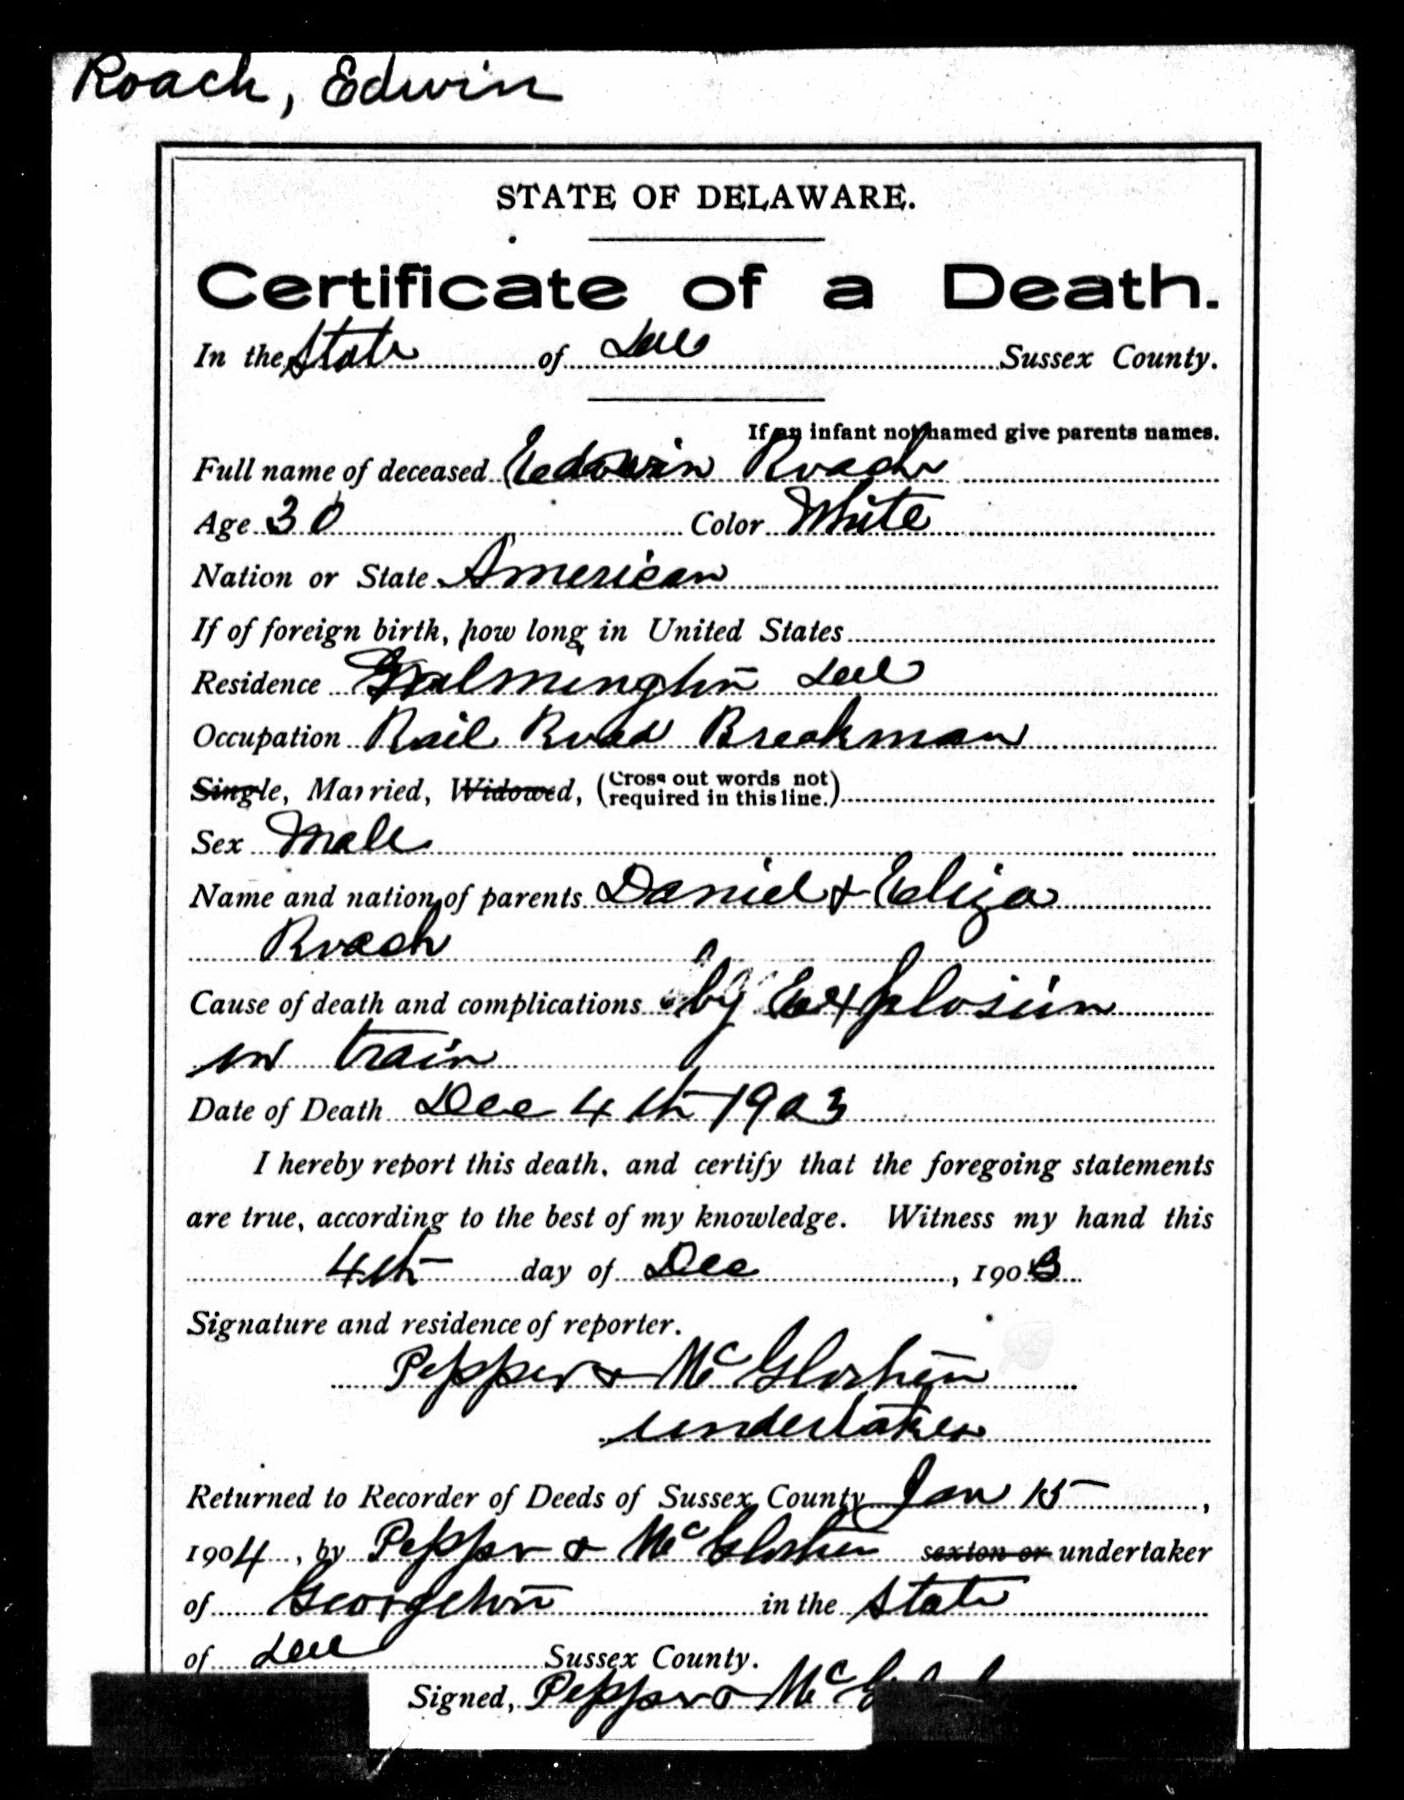 Young railroader edwin roach killed in greenwood explosion delaware death certificate for edwin roach source jane roach butler and harry edwin roach 1betcityfo Images